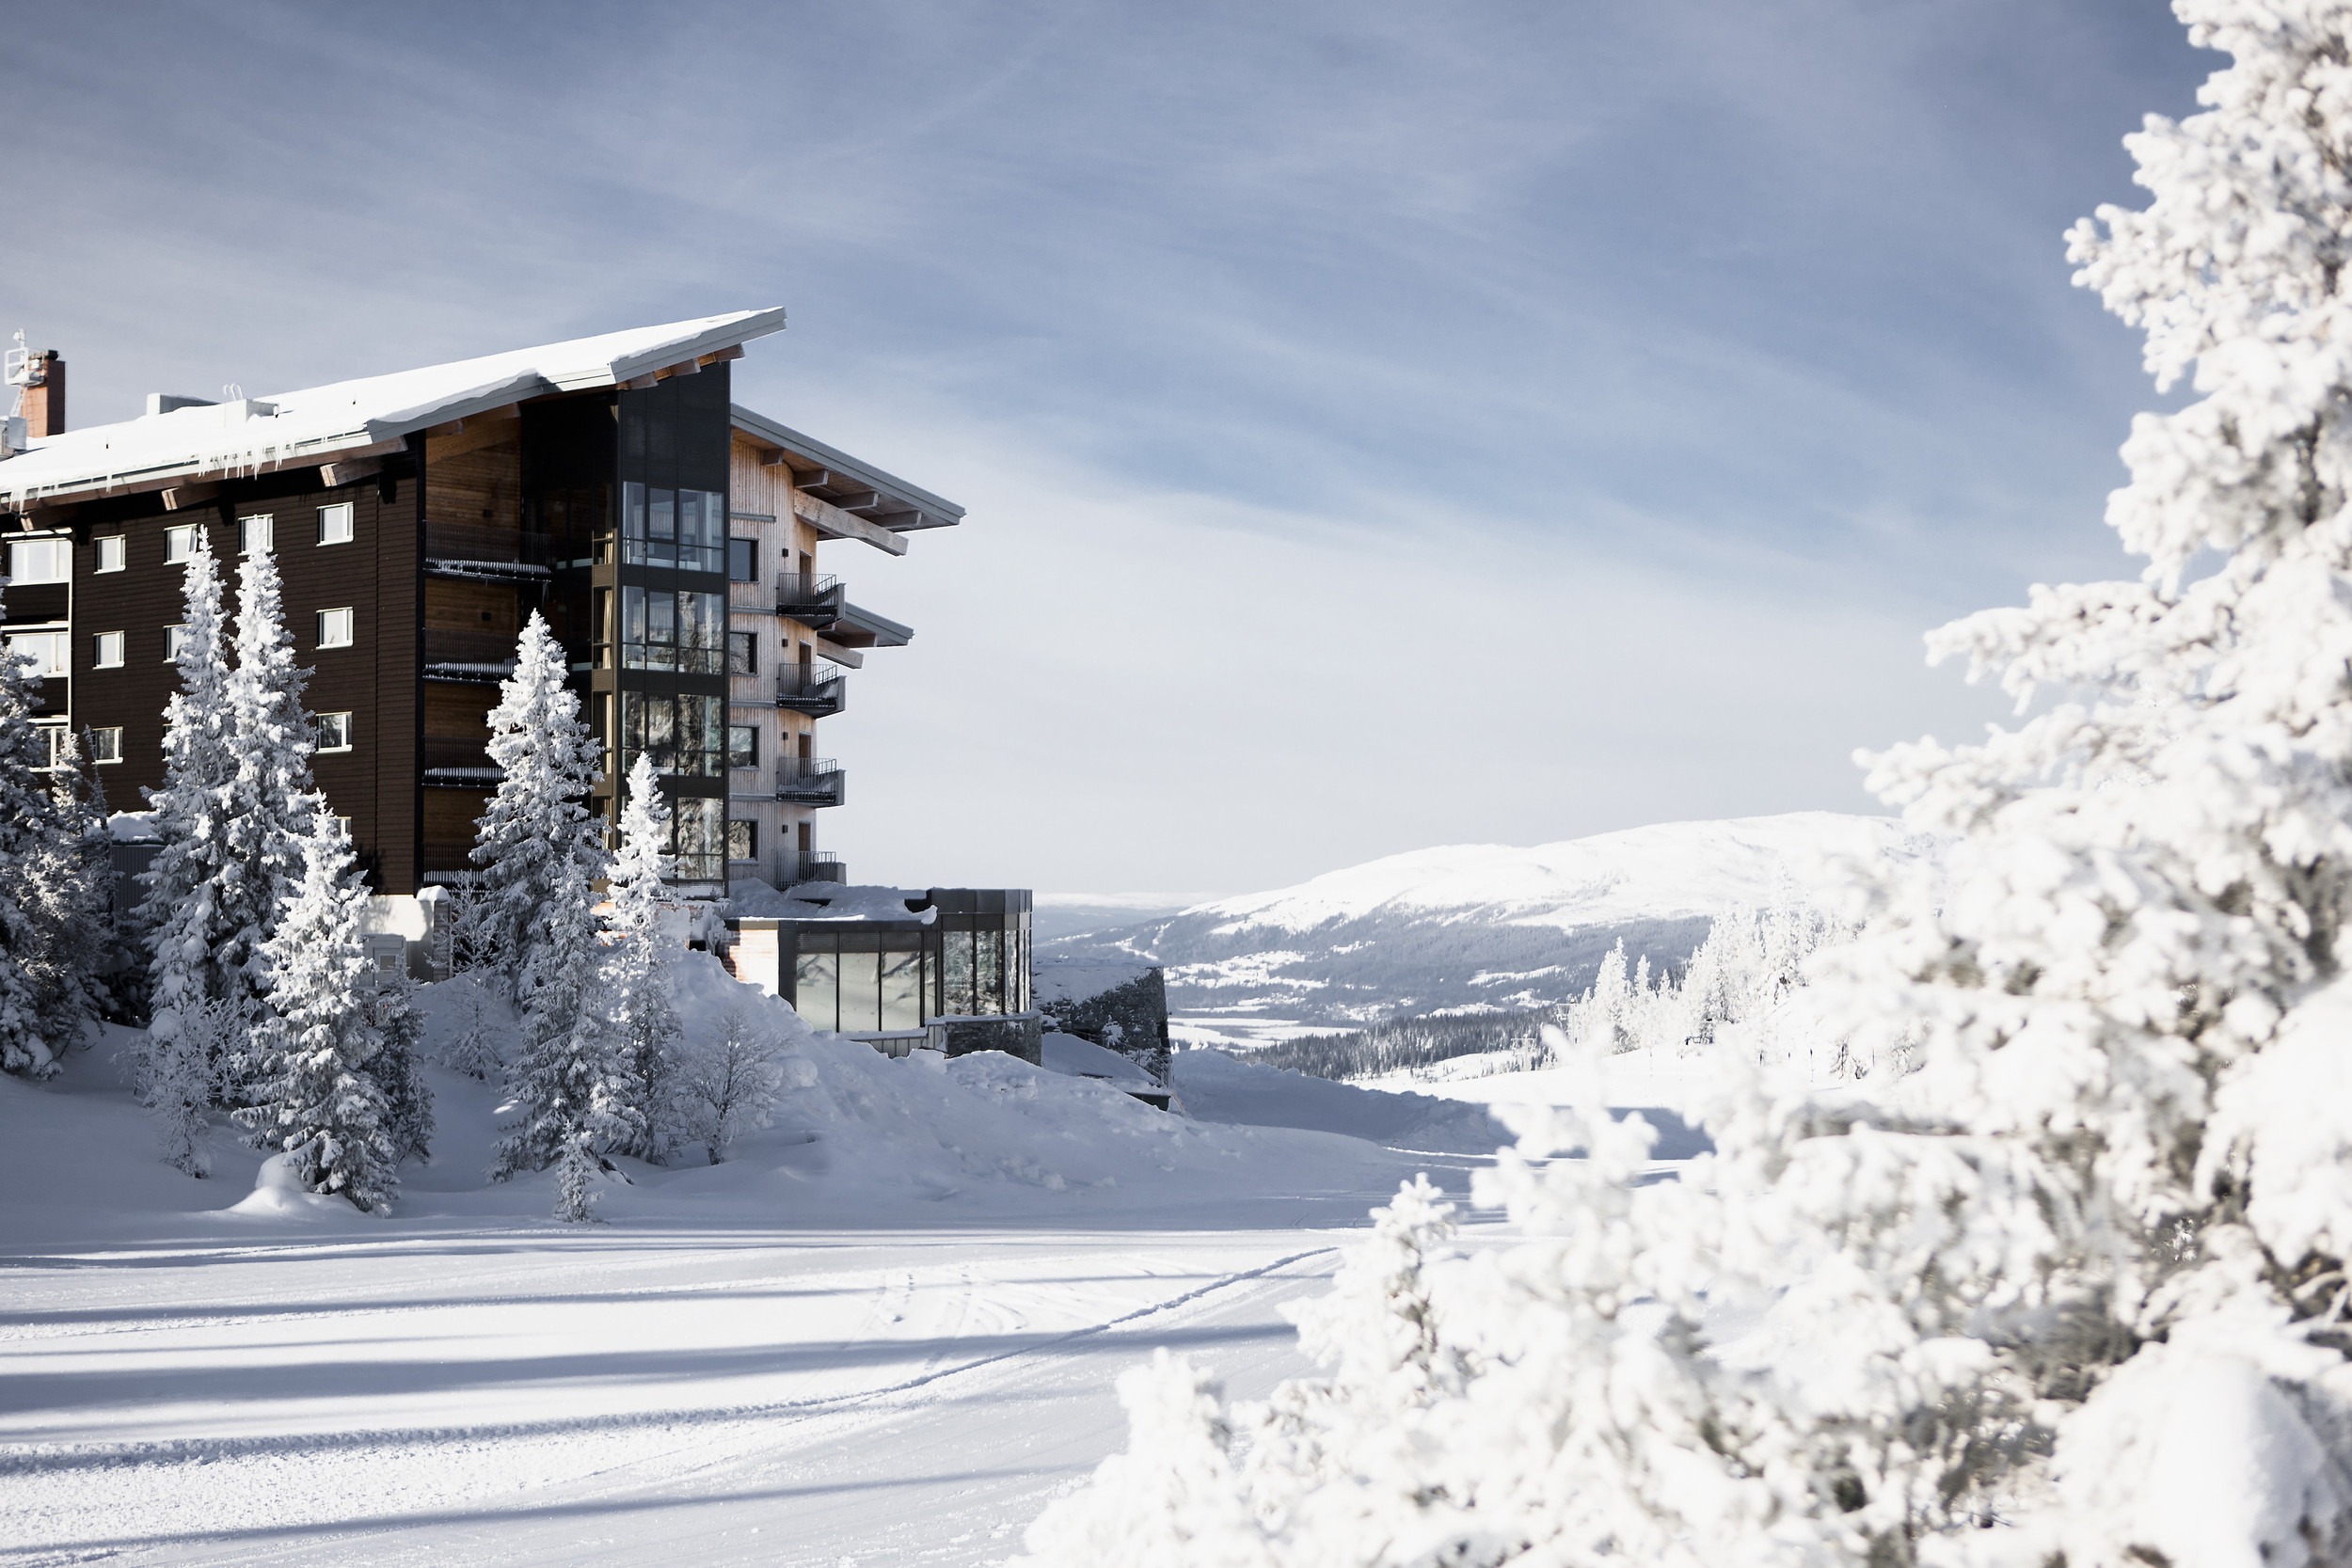 Copperhill Mountain Lodge is one of the most beautiful hotels in the region.